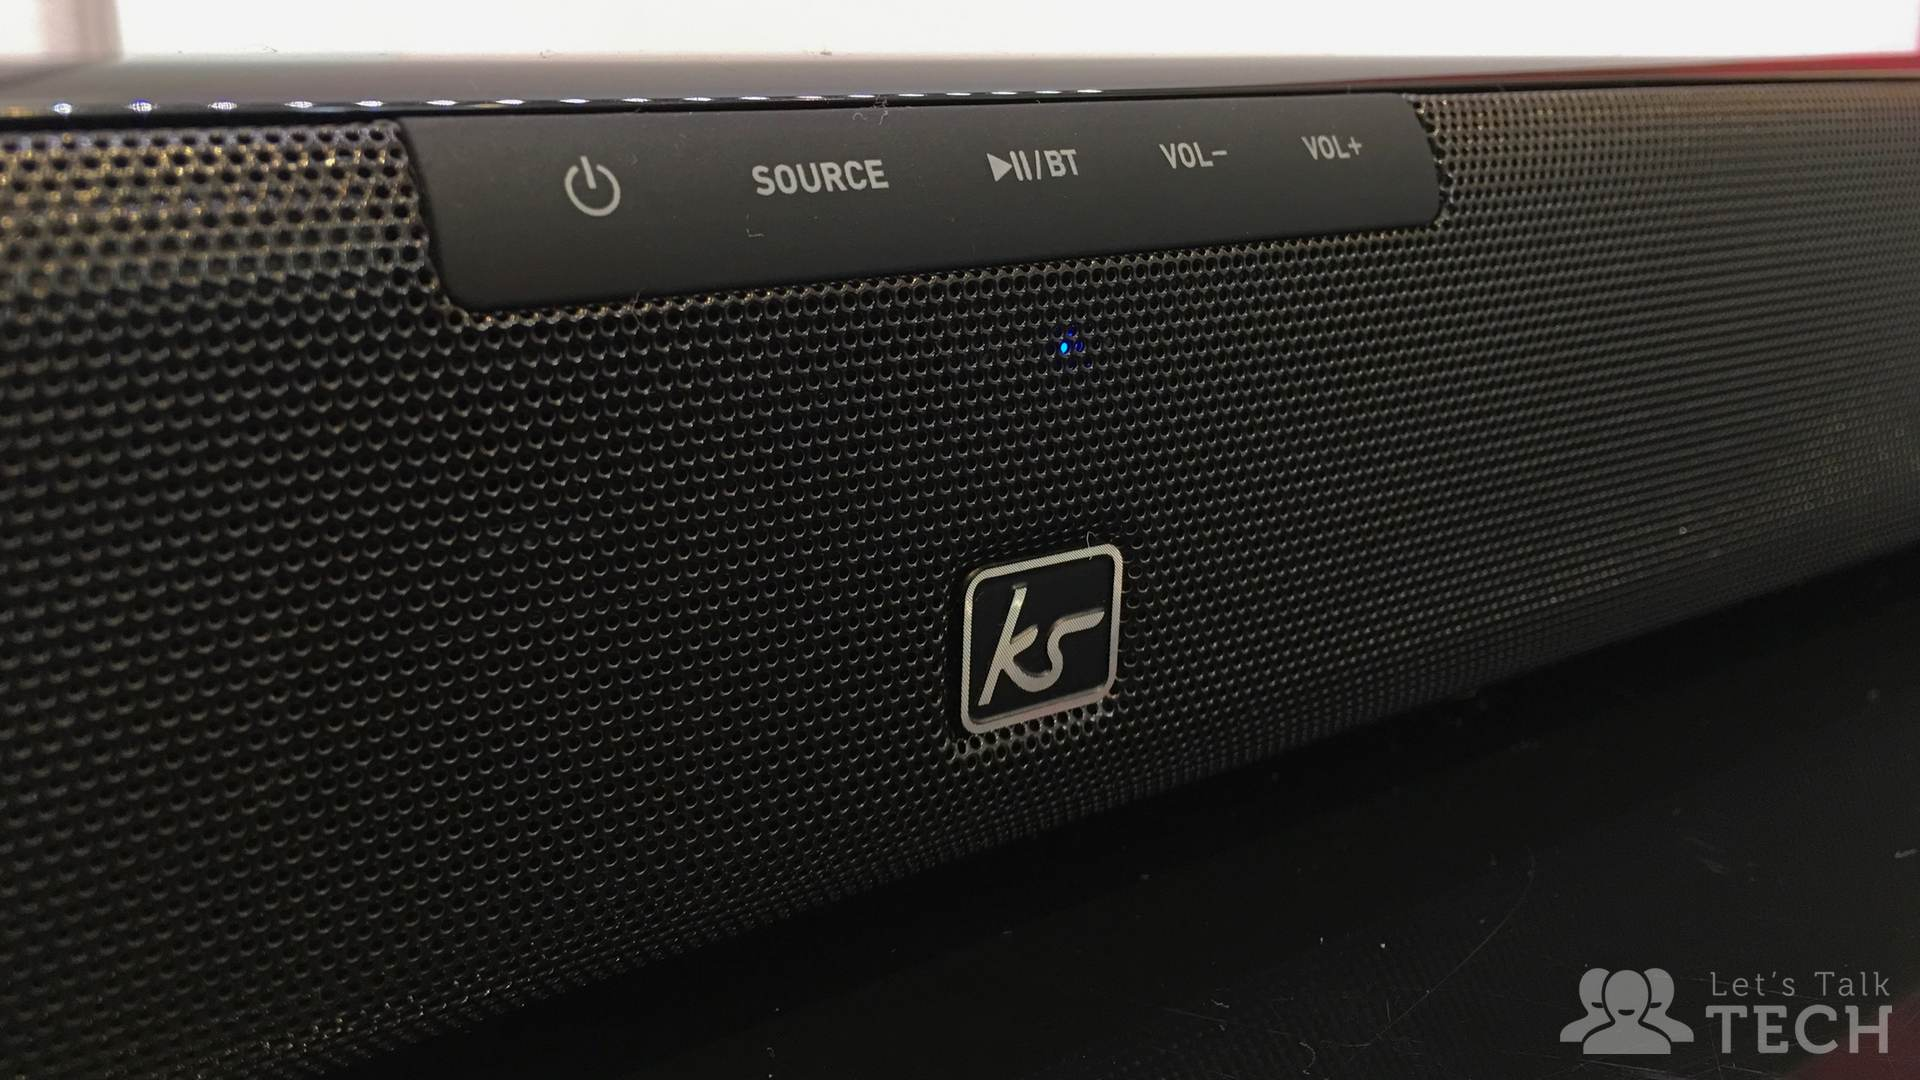 KitSound's Stadium 120 soundbar has a very simple design